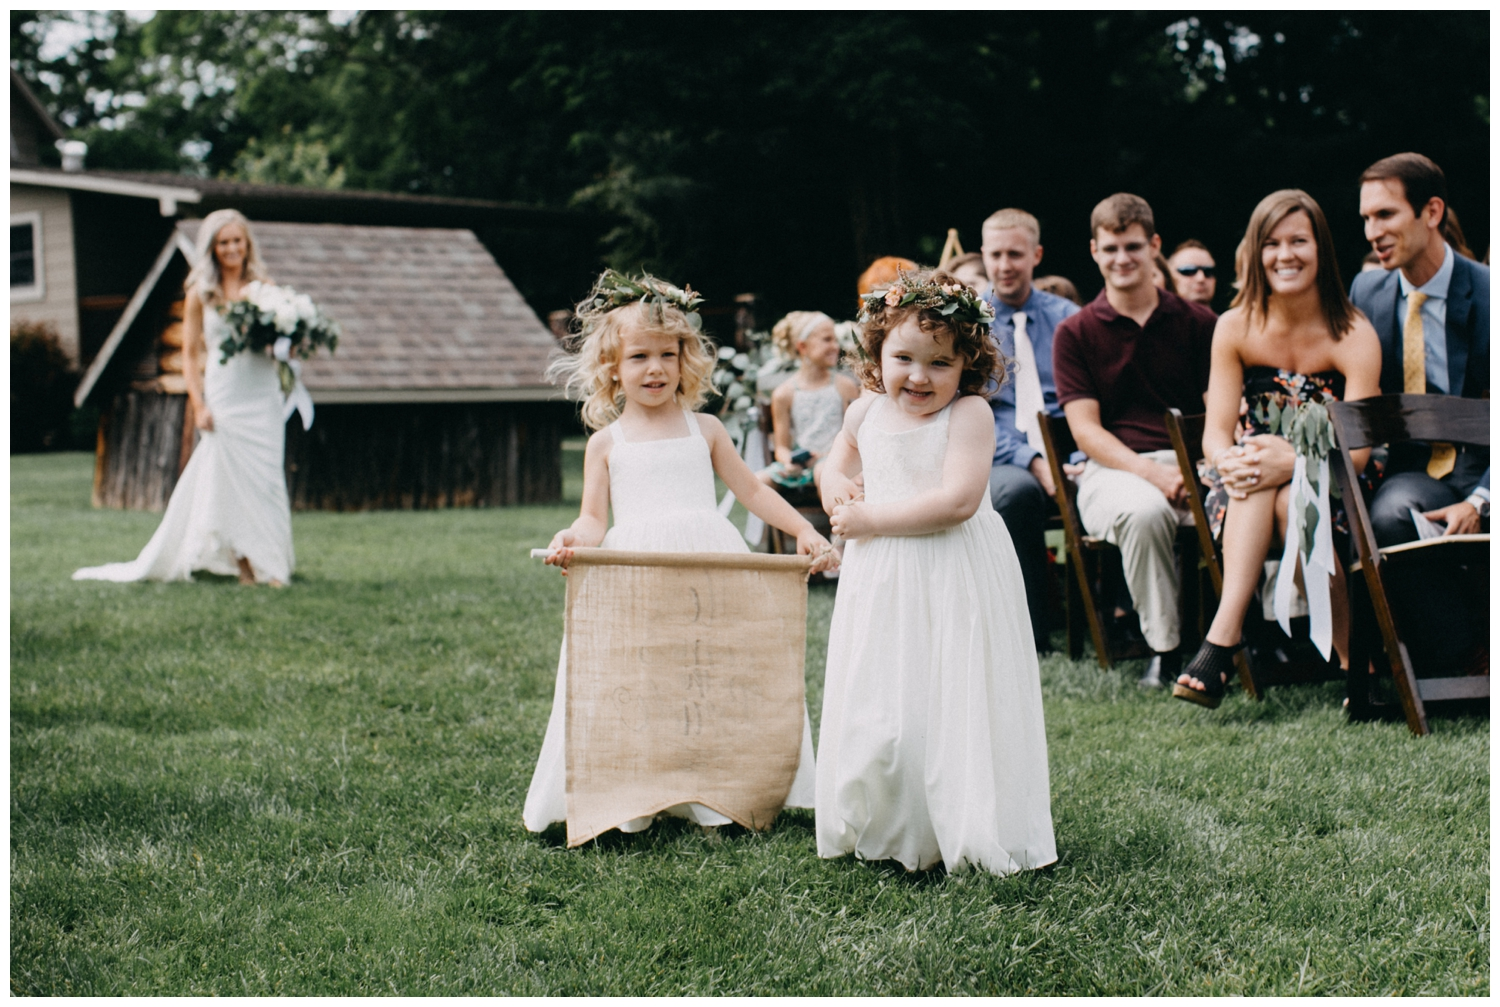 Flower girls at Creekside Farm wedding ceremony